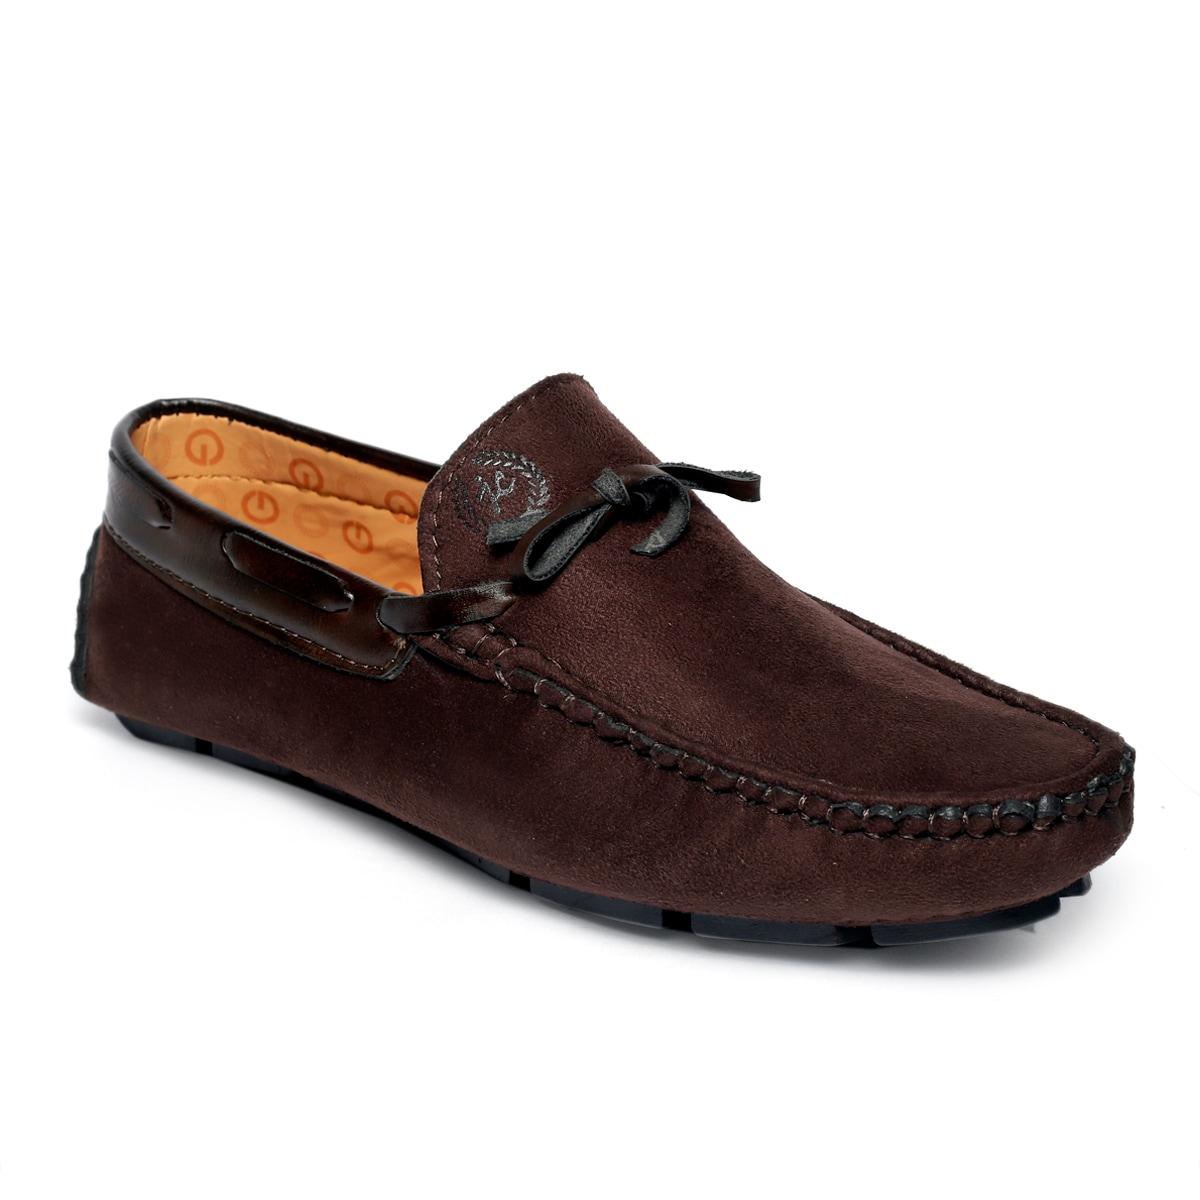 JK PORT COMFORTABLE, FASHIONABLE AND TRENDY LOAFERS JKPLF053BRN (BROWN,6-10,8 PAIR)